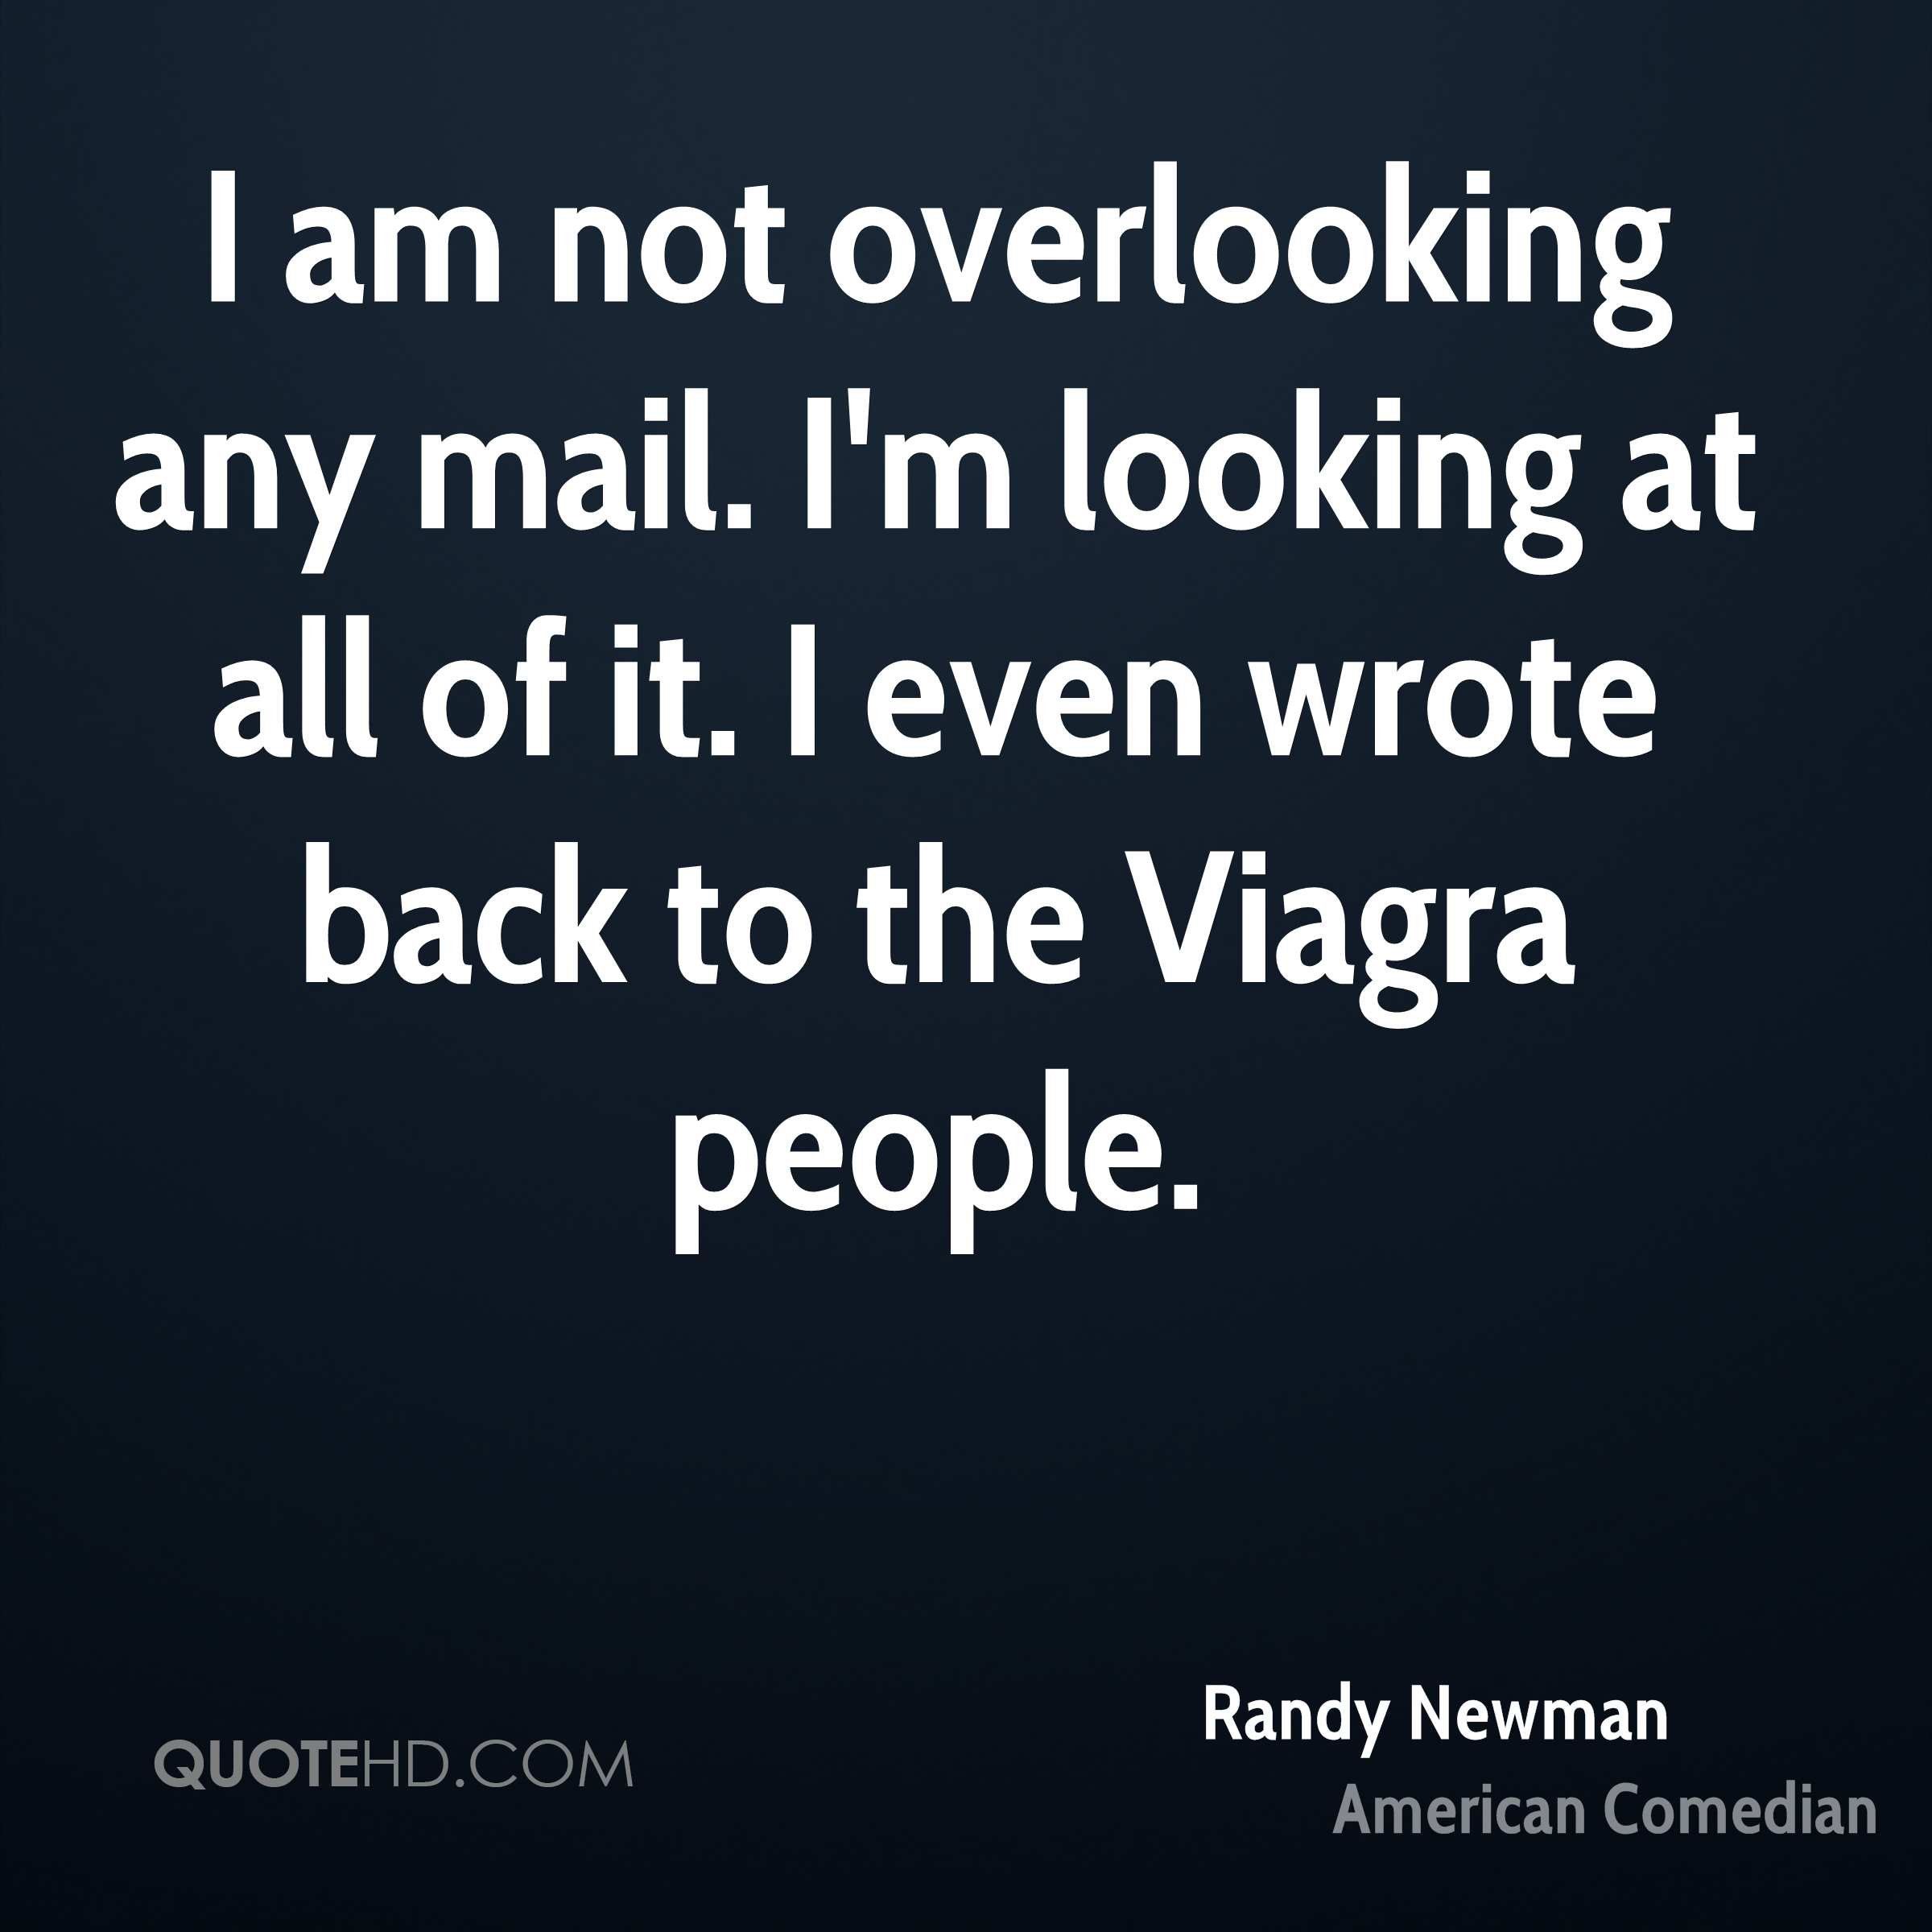 I am not overlooking any mail. I'm looking at all of it. I even wrote back to the Viagra people.